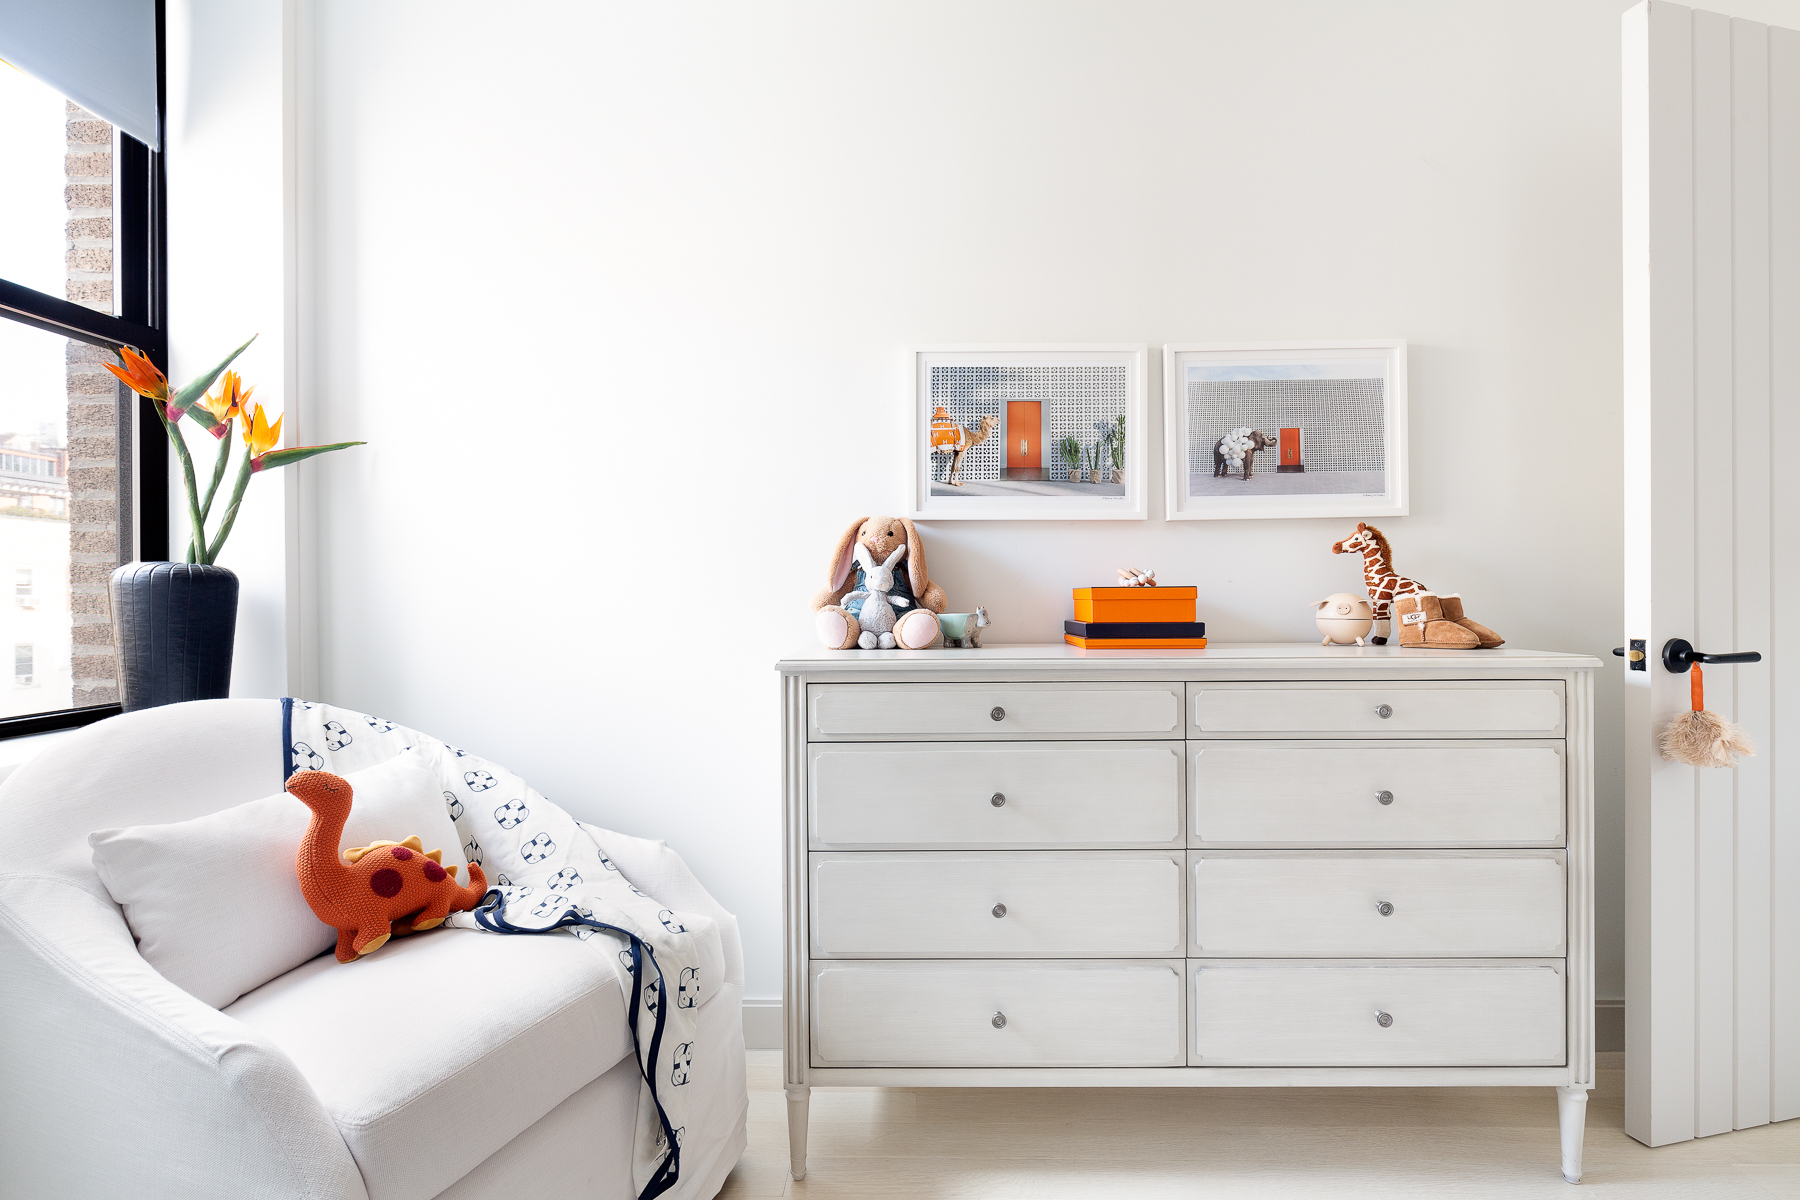 Orange is the new black, bringing in the pop of color on the functional side of the room. While the parents change and read to the little one, I brought in Hermes orange to create a luxe sophistication to the room. The overall neutral backdrop comes to life with this accent color.